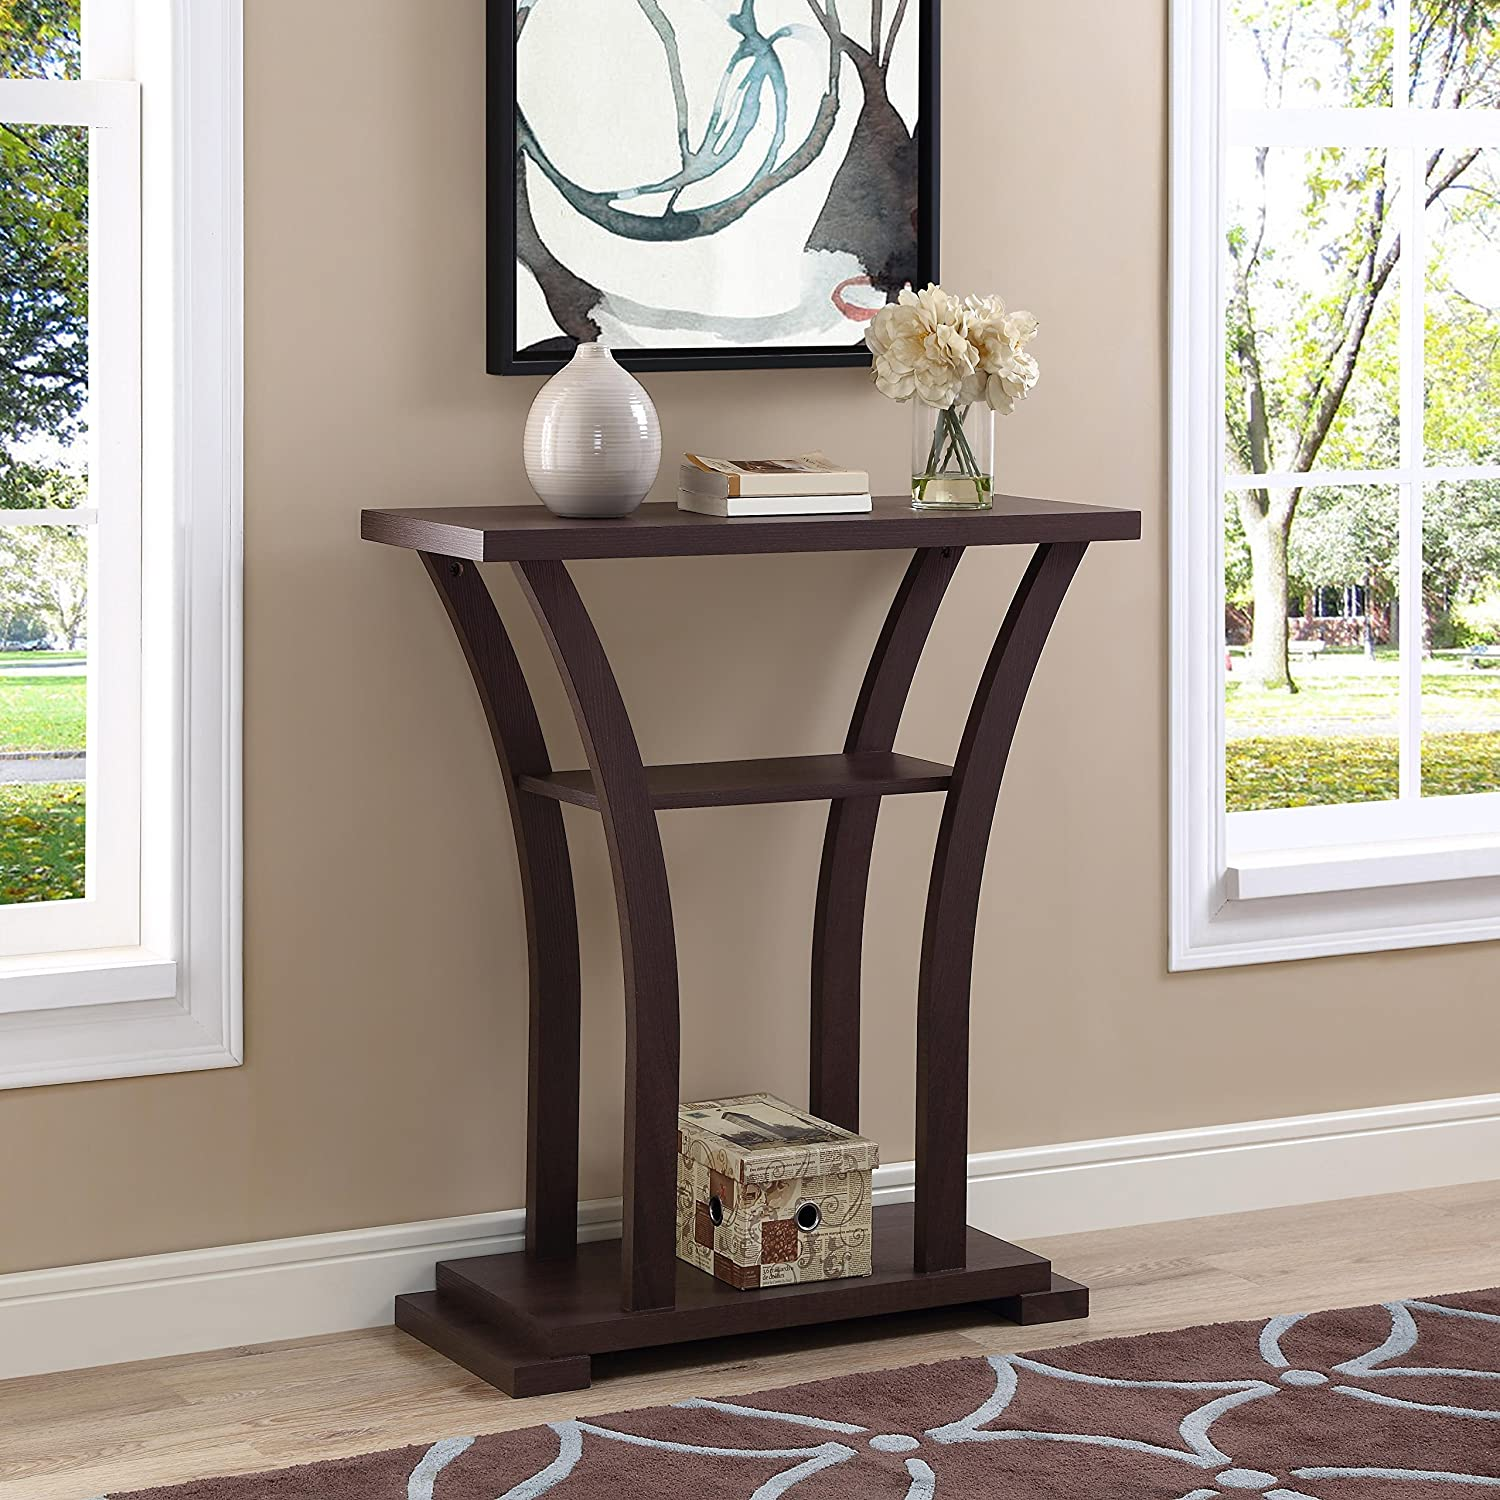 Peachy Cappuccino Finish Hall Console Sofa Entryway Accent Table With Curved Legs Interior Design Ideas Inesswwsoteloinfo